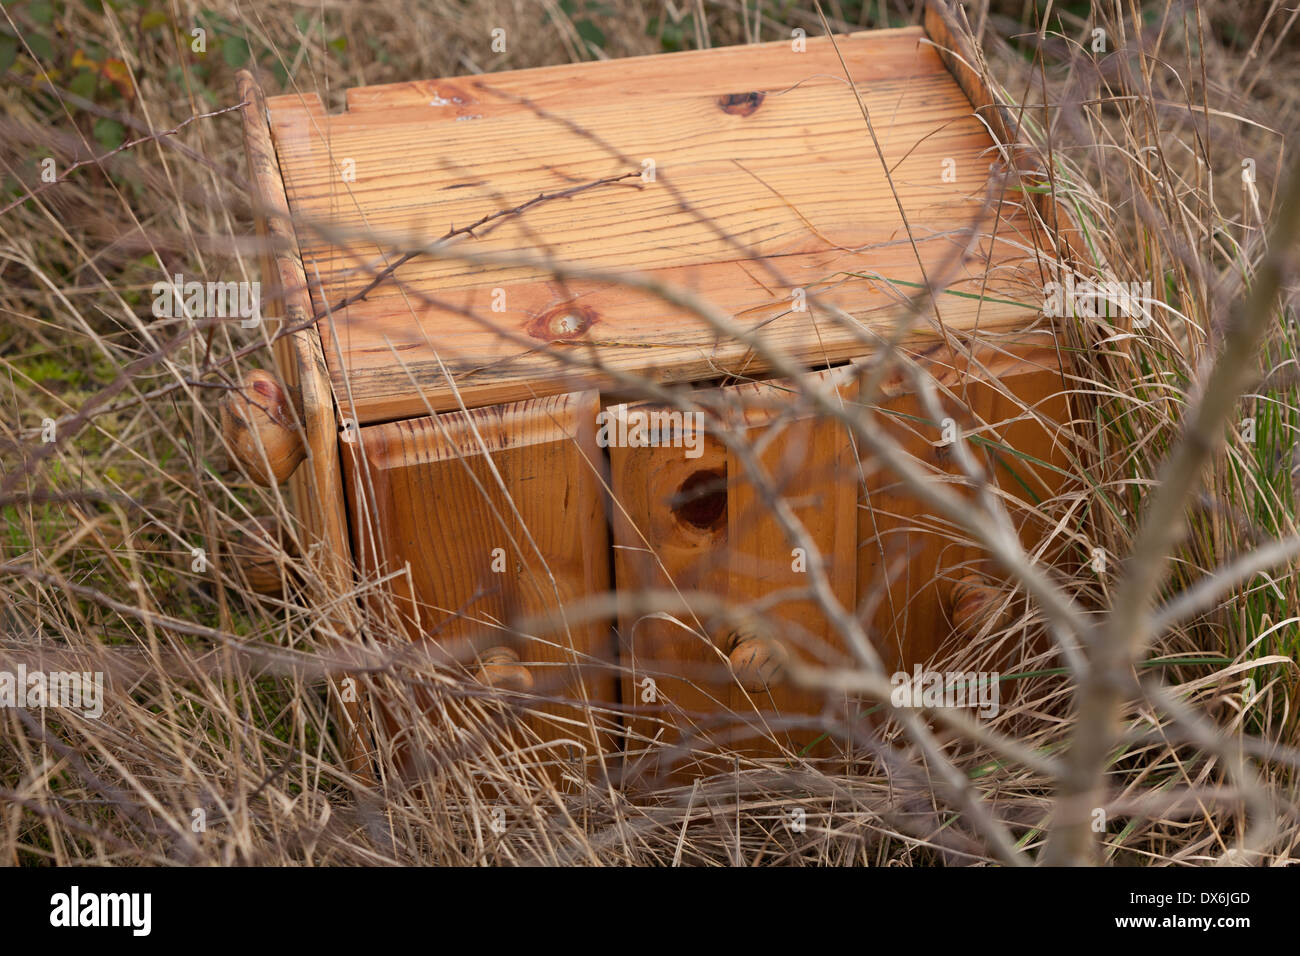 Flytipped bedroom furniture in a hedgerow. - Stock Image